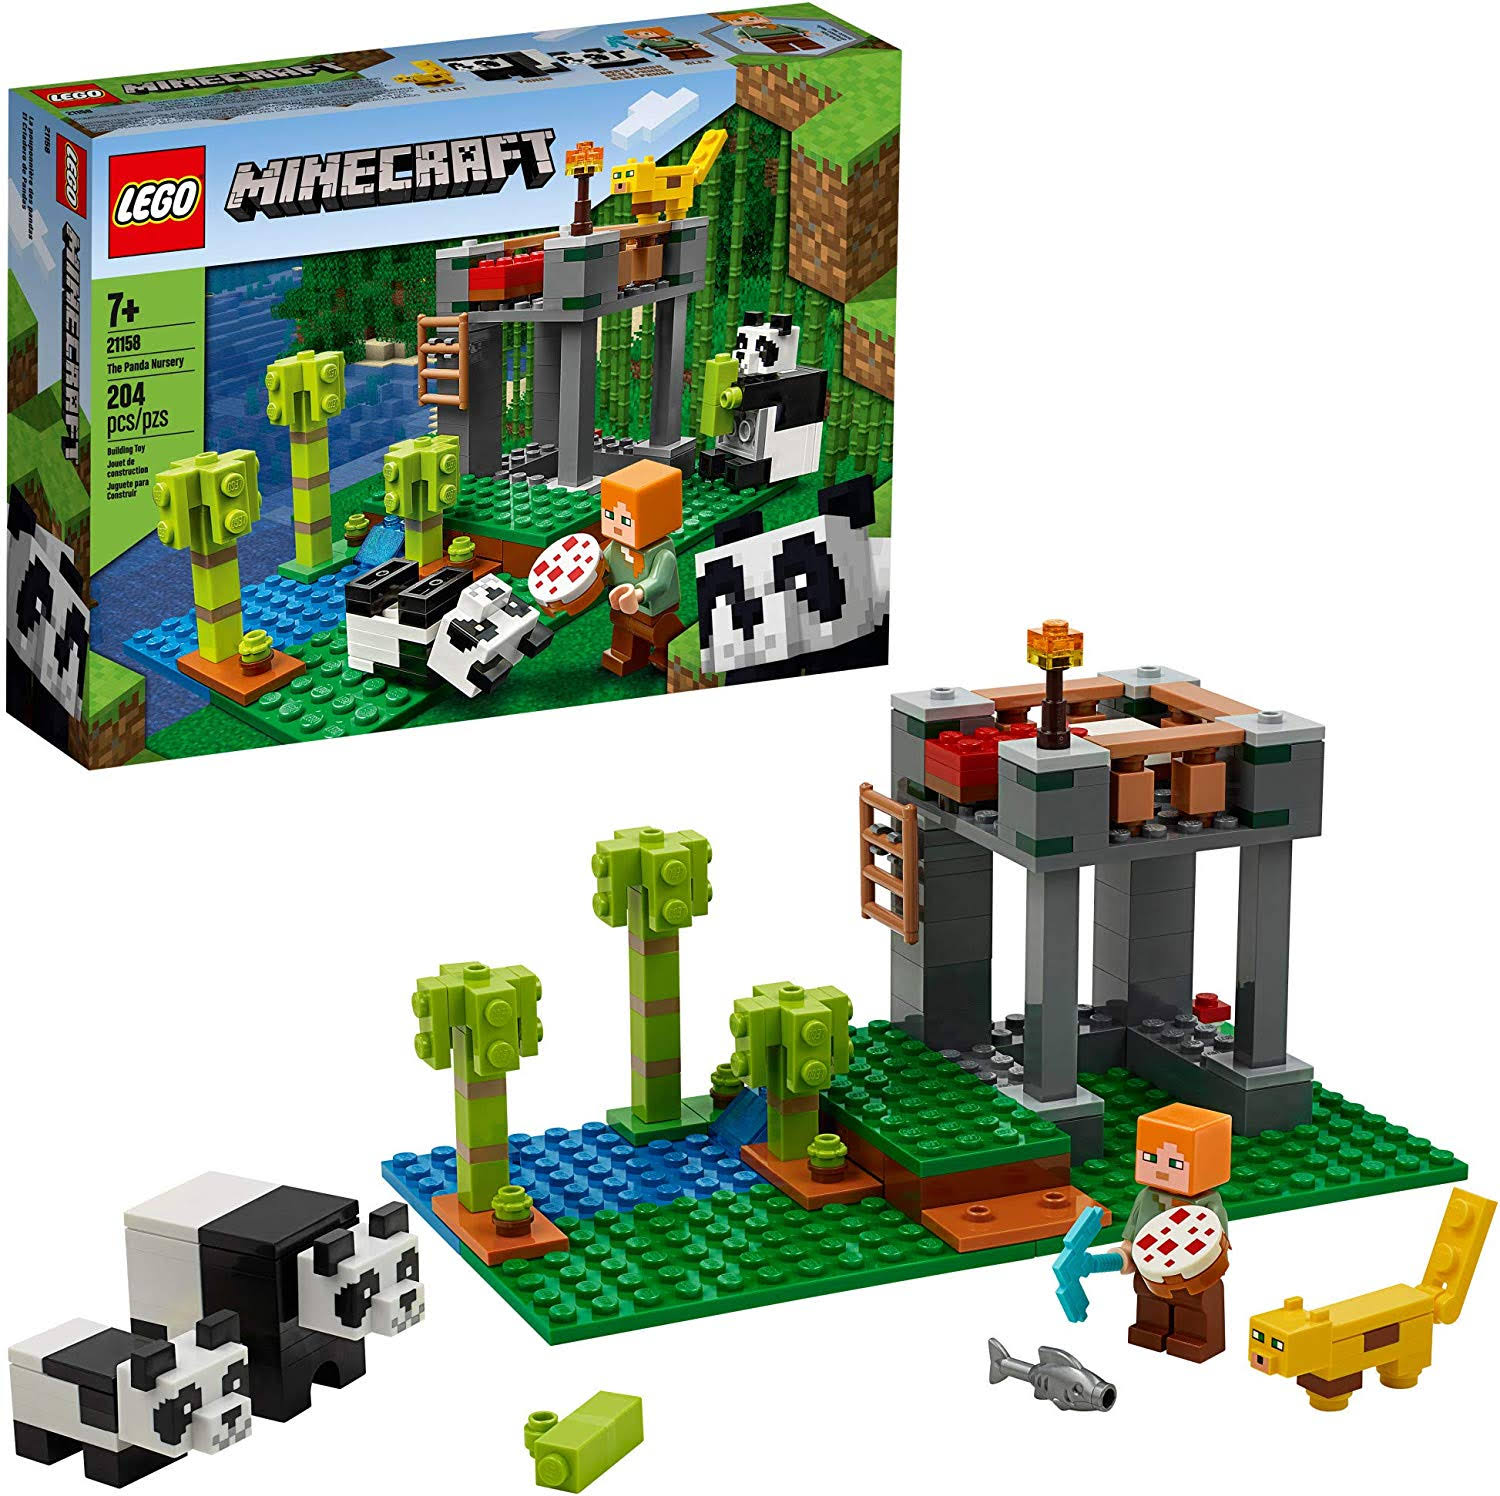 Lego Minecraft - The Panda Nursery 21158